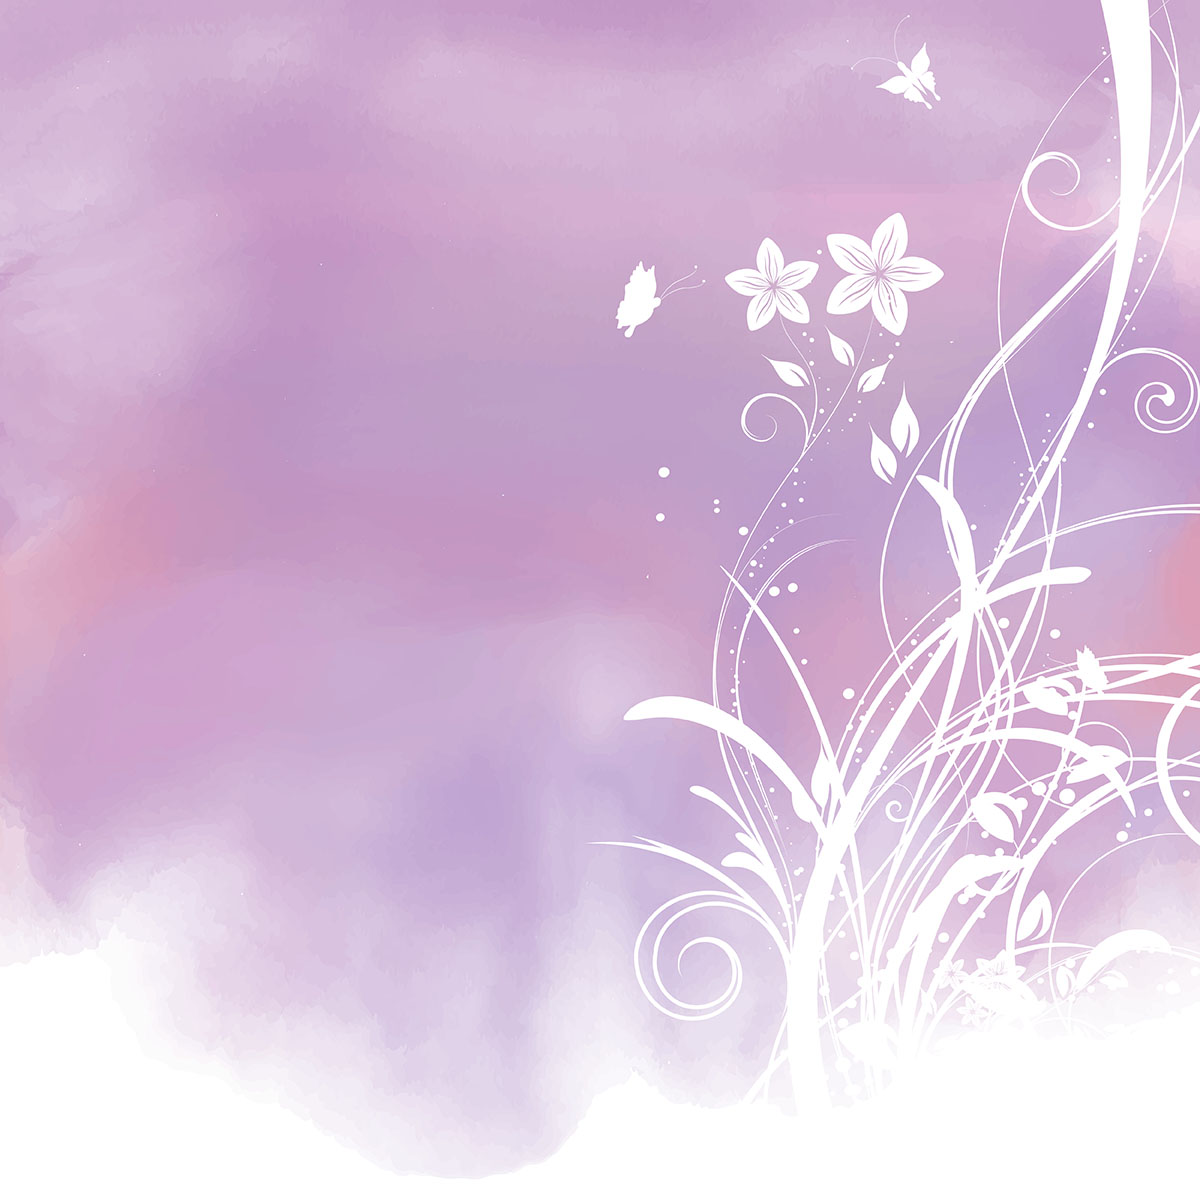 Floral Watercolor Background Download Free Vectors Clipart